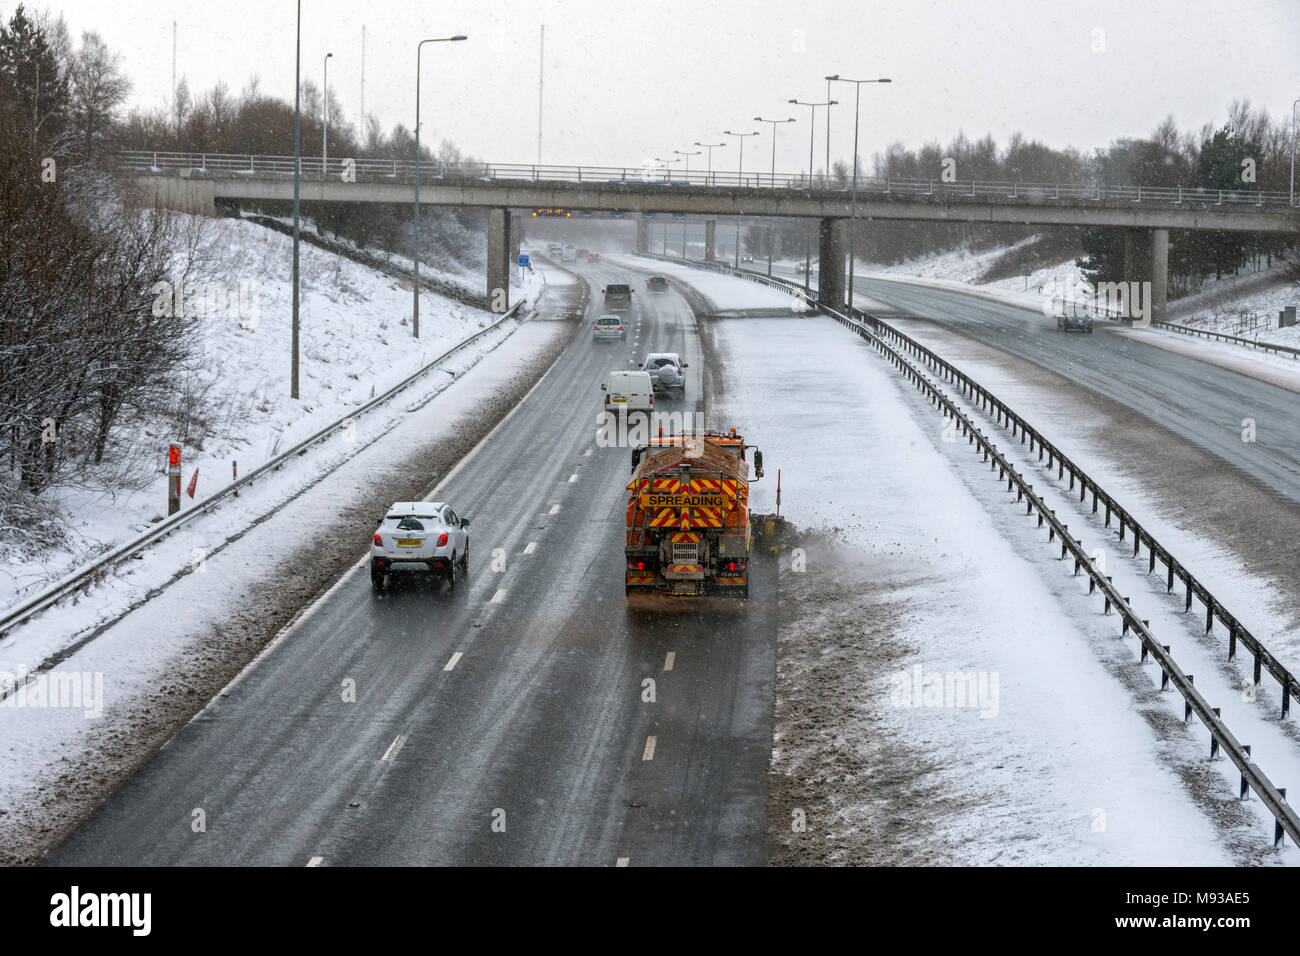 Snow plough and gritting vehicle on the M60 motorway after a snow fall, Ashton-under-Lyne, Tameside, Manchester, England, UK - Stock Image